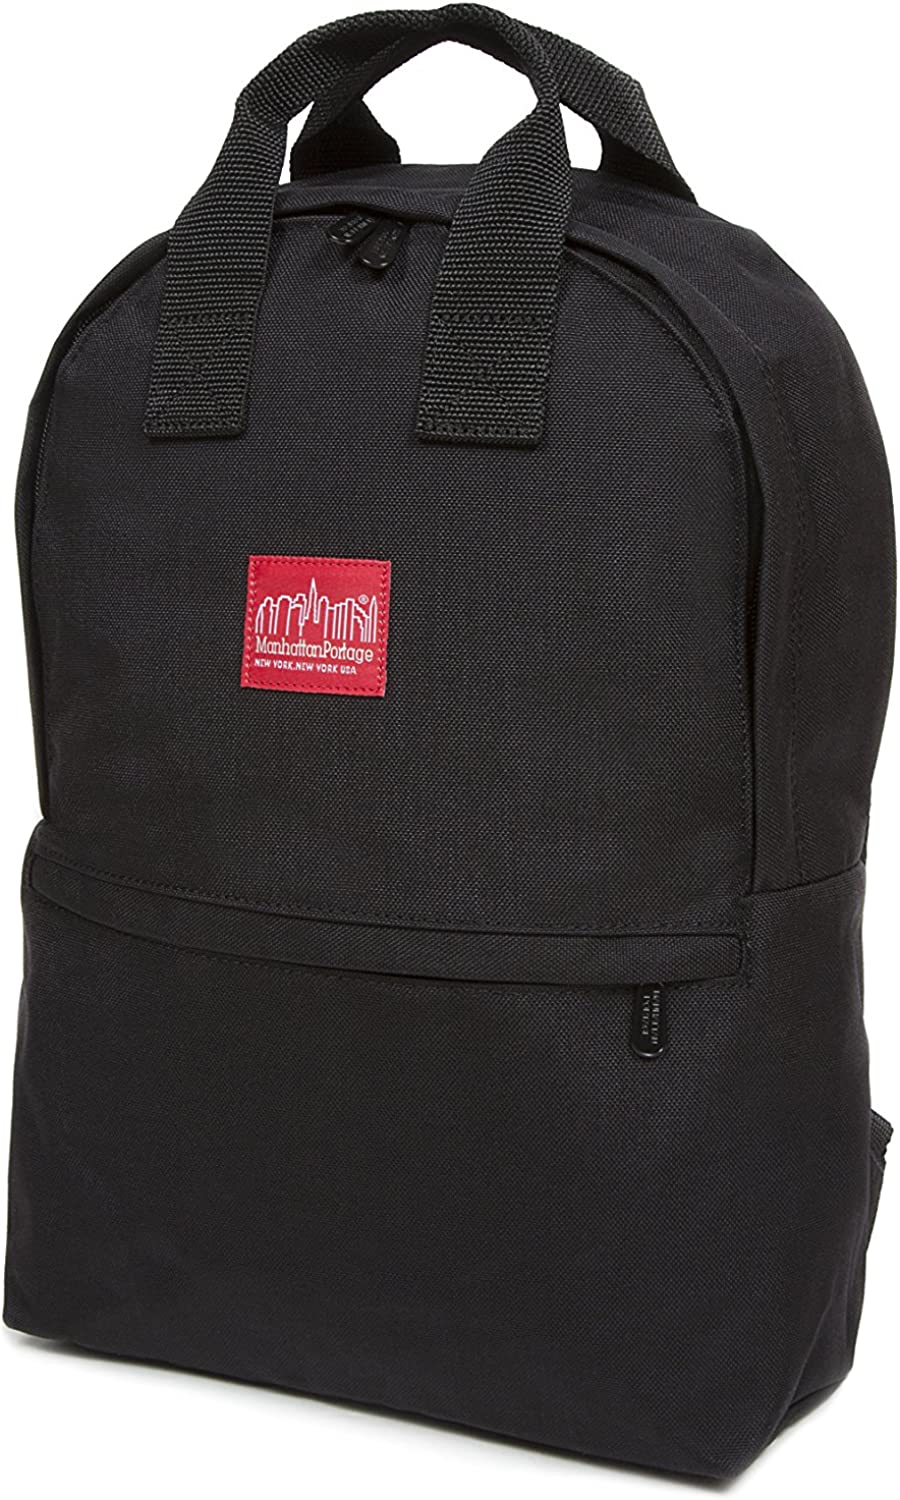 Manhattan Portage Governors Backpack, One Size, Black